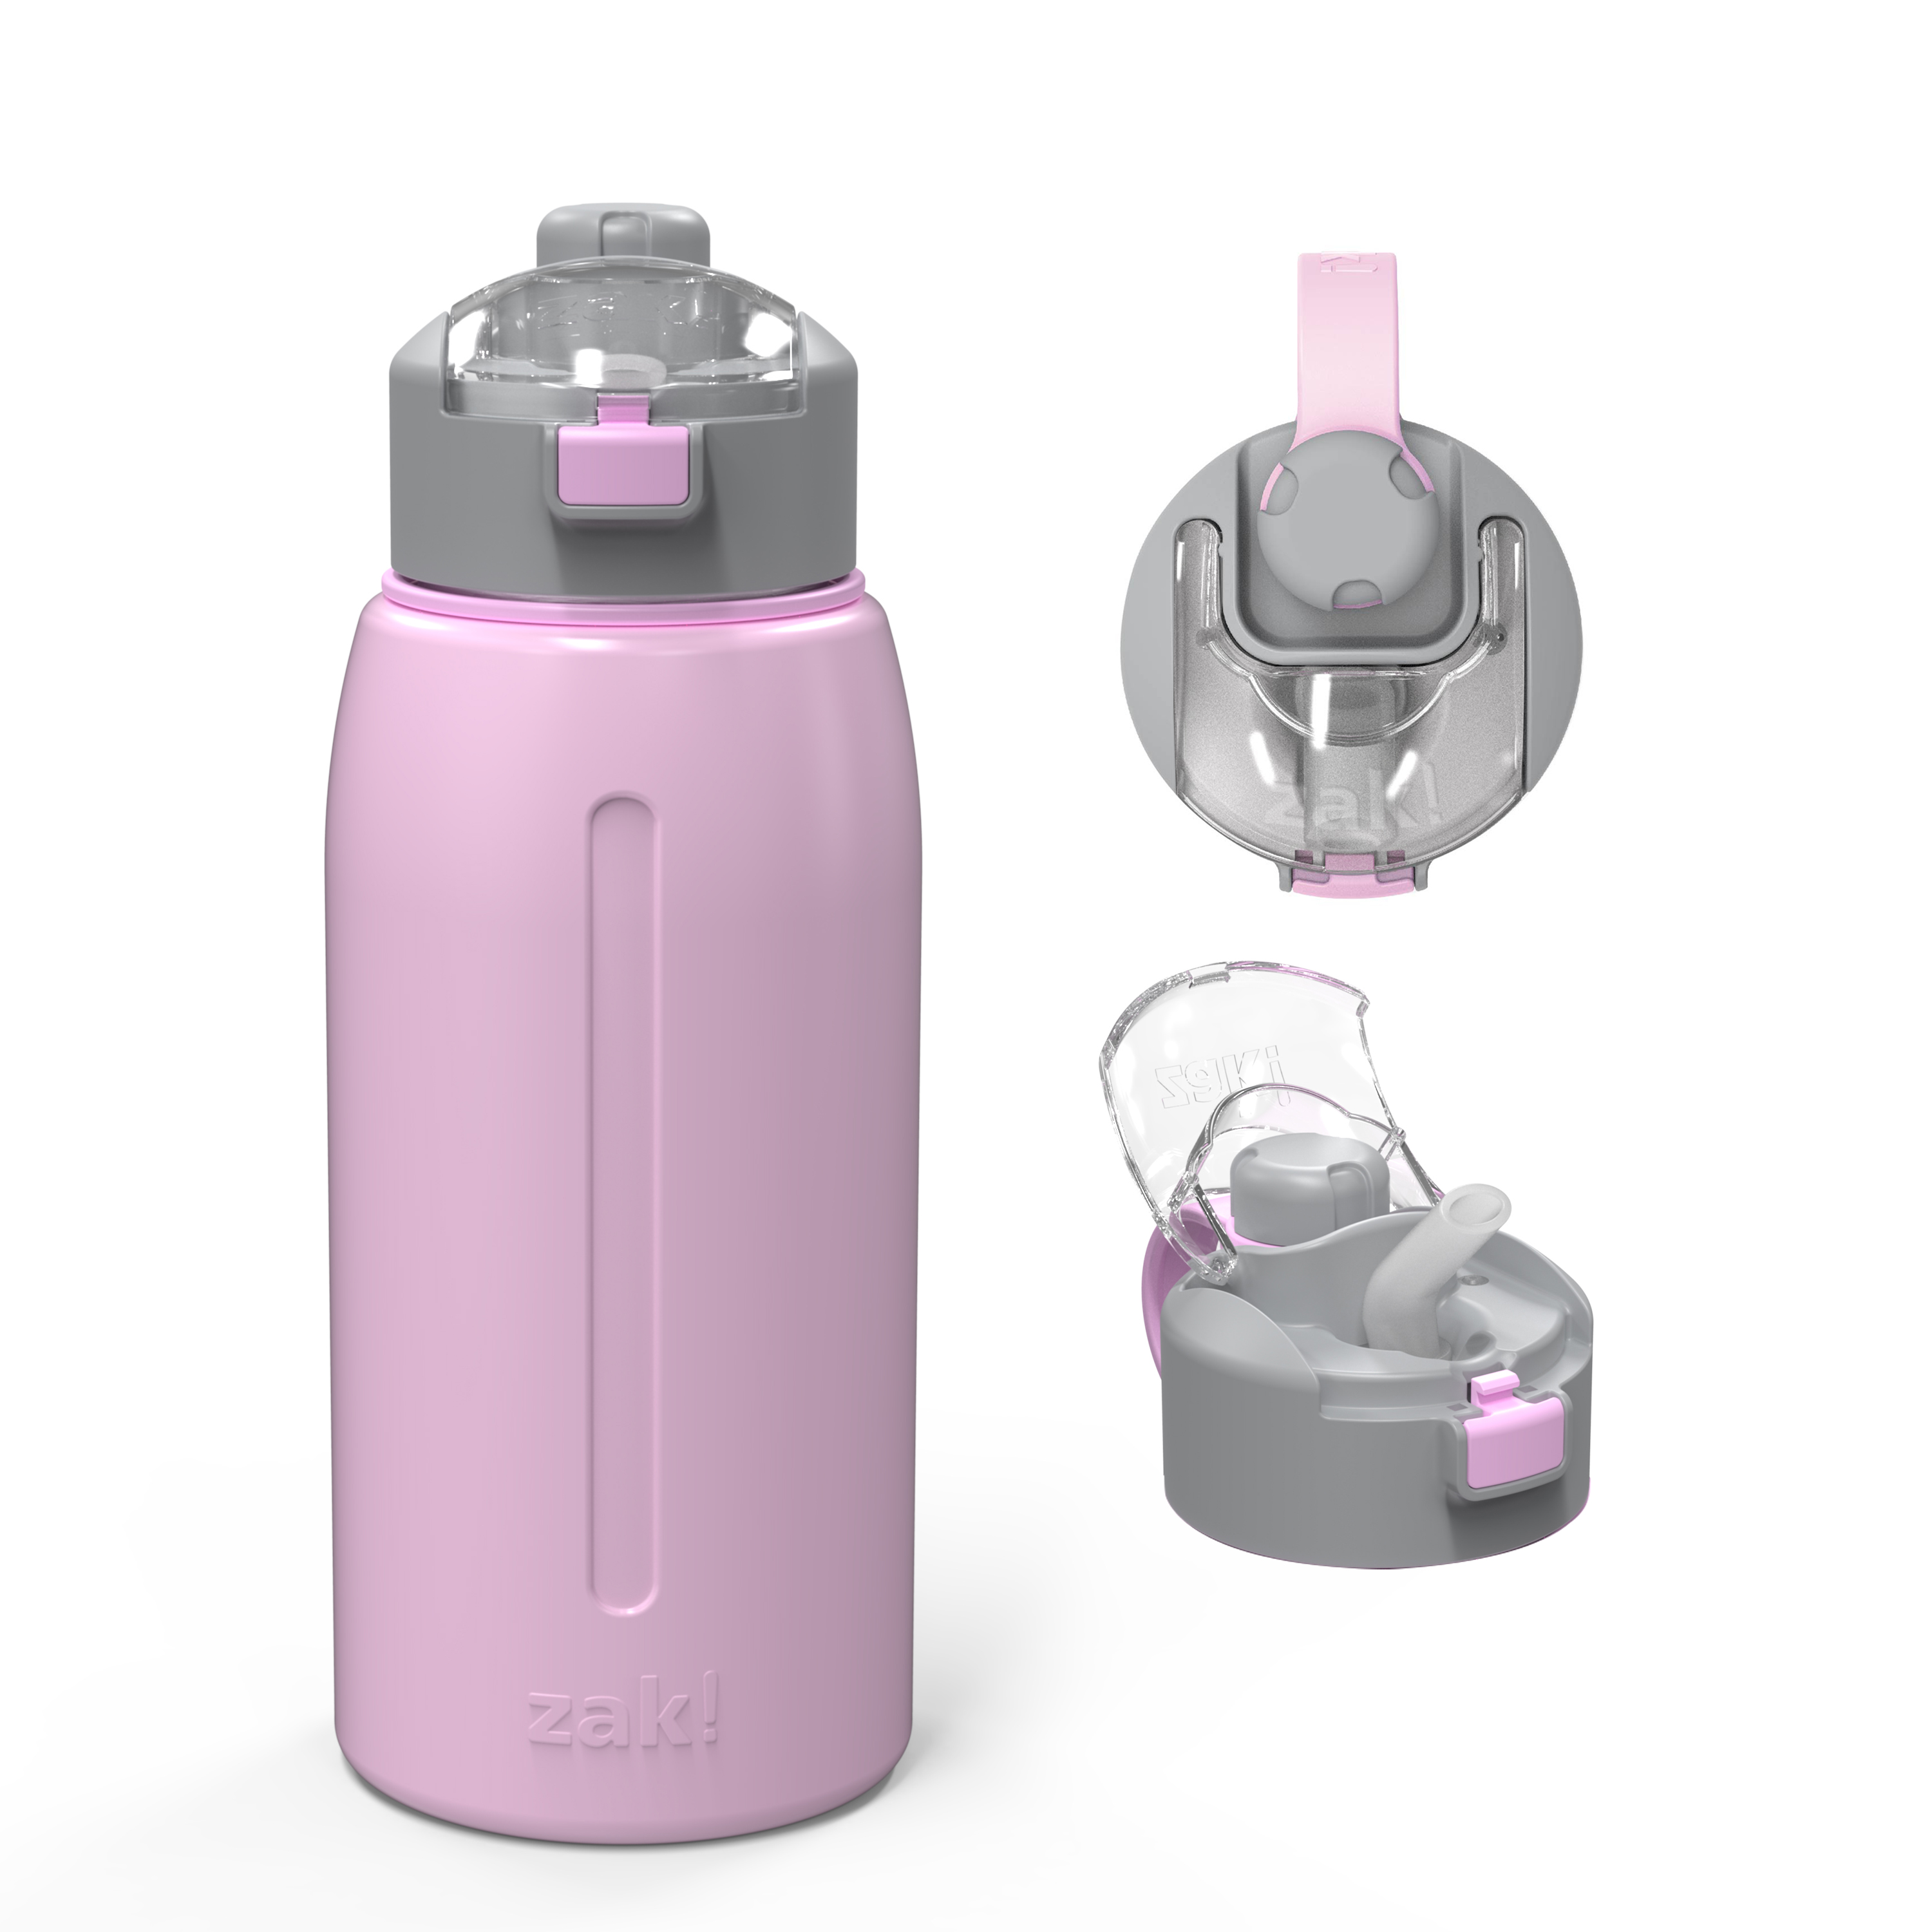 Genesis 32 ounce Vacuum Insulated Stainless Steel Tumbler, Lilac slideshow image 1